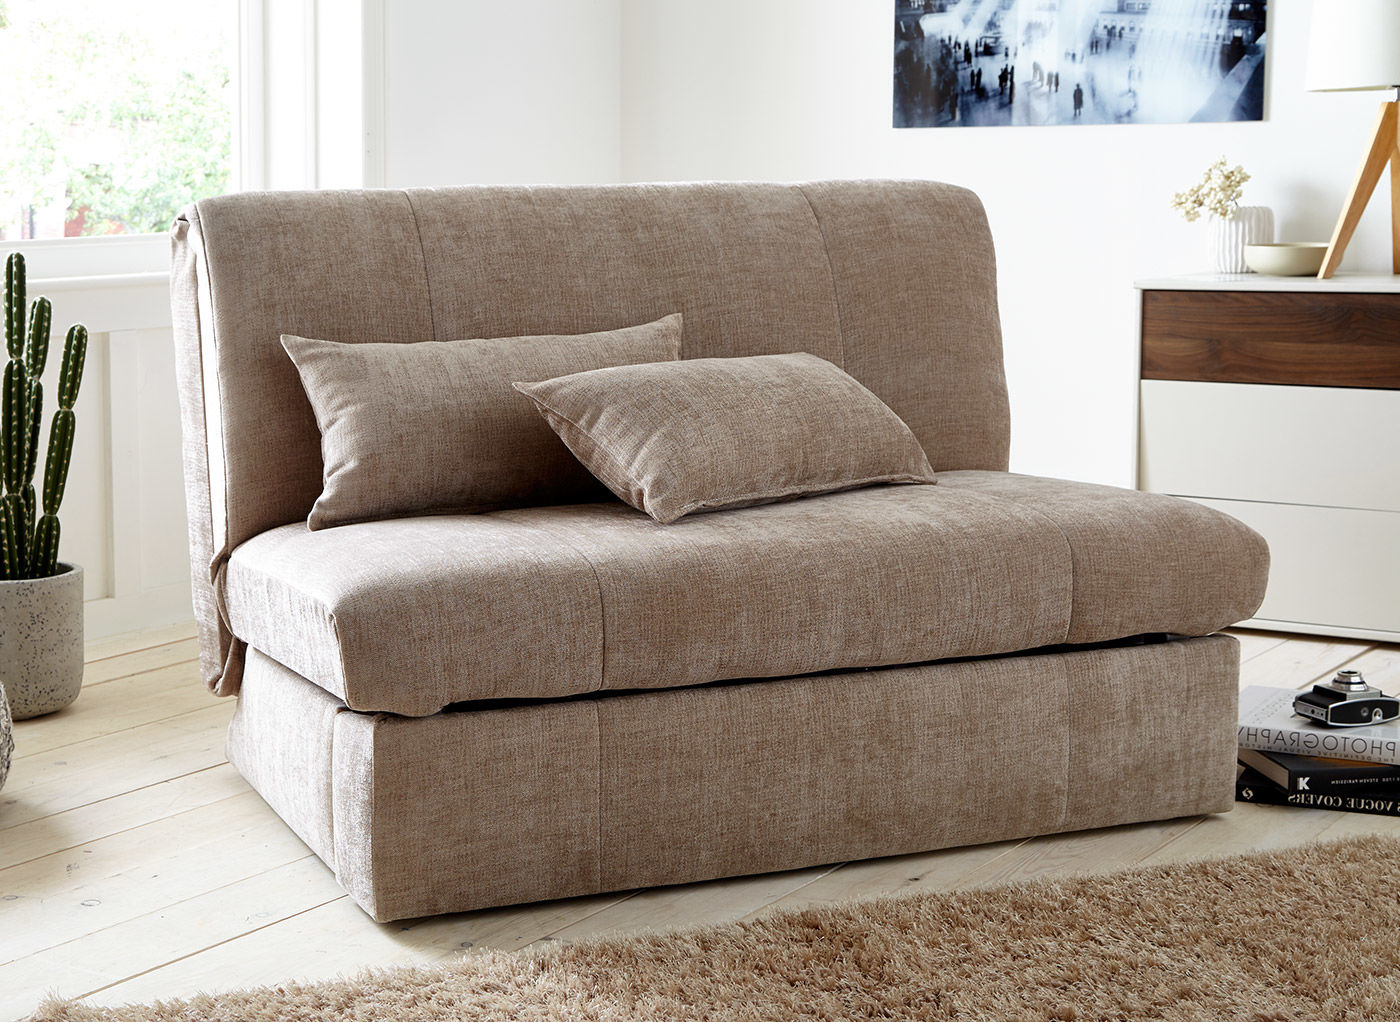 Attractive sofabed amazing sofa beds kelso sofa bed | dreams sdqpnpf